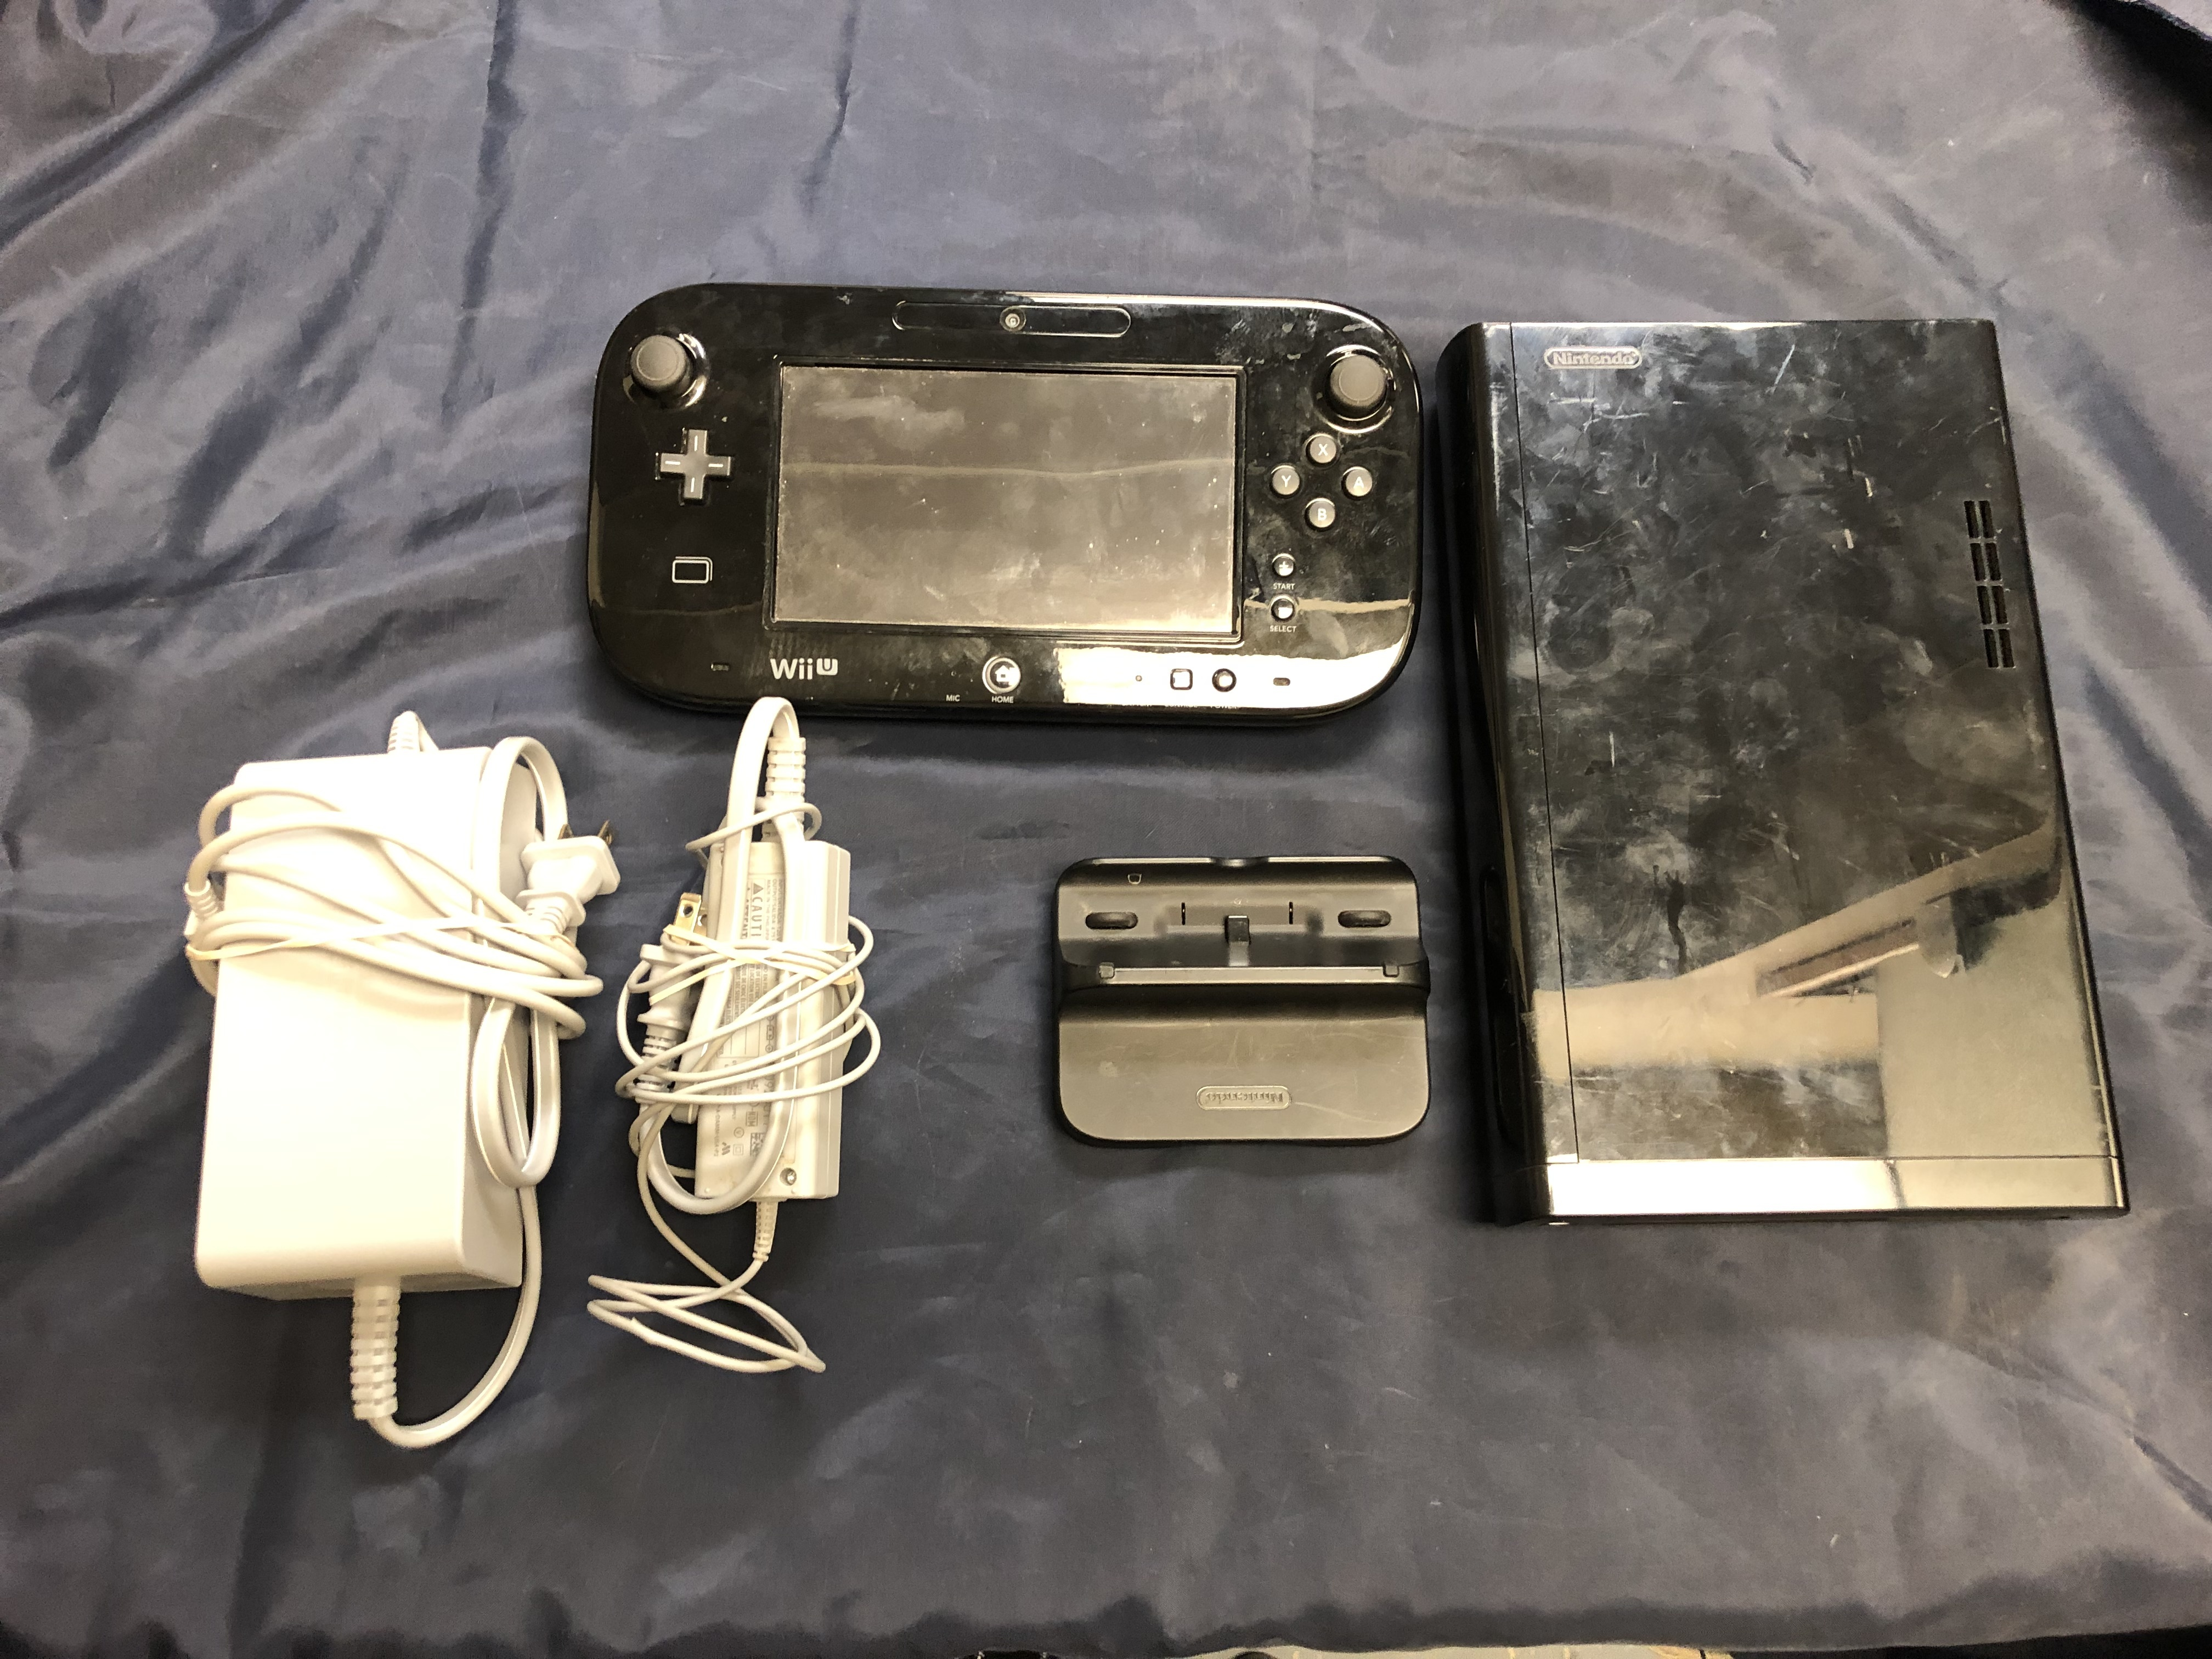 32 GB WII U CONSOLE W/ CORDS - WUP-010